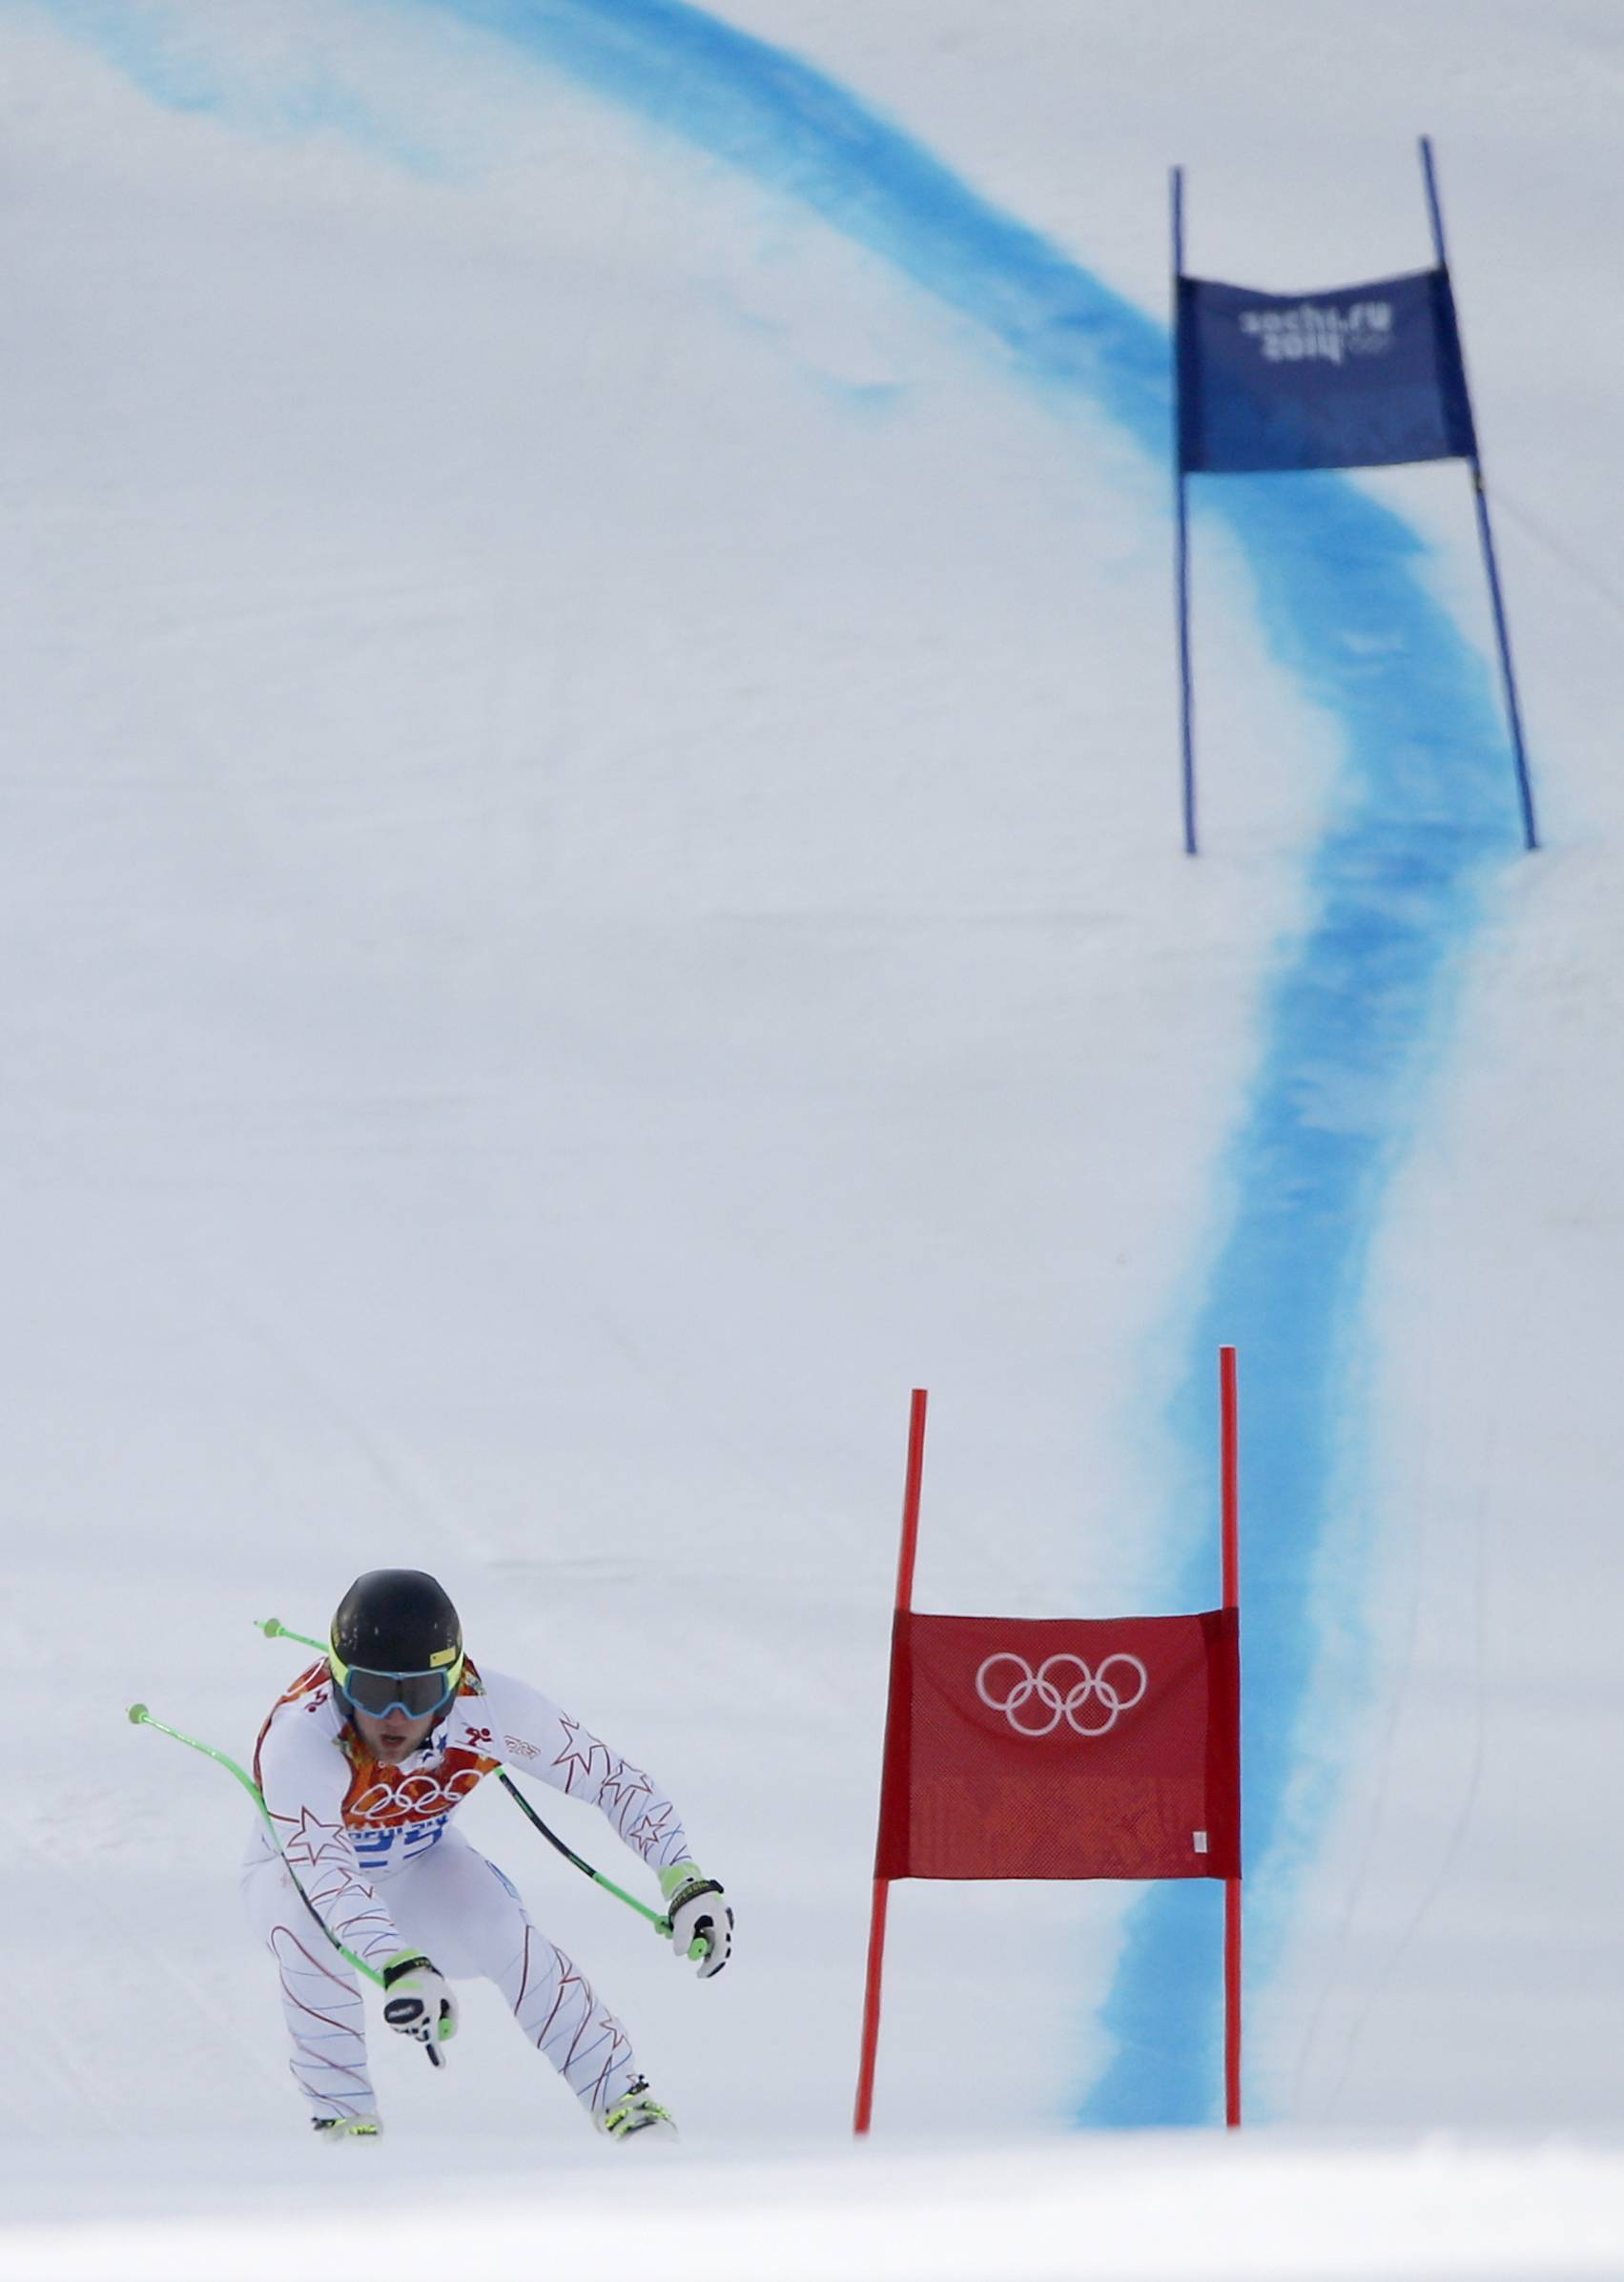 United States' Andrew Weibrecht passes a gate near the finish line on his way to taking the silver medal in the men's super-G at the Sochi 2014 Winter Olympics Sunday in Krasnaya Polyana, Russia.